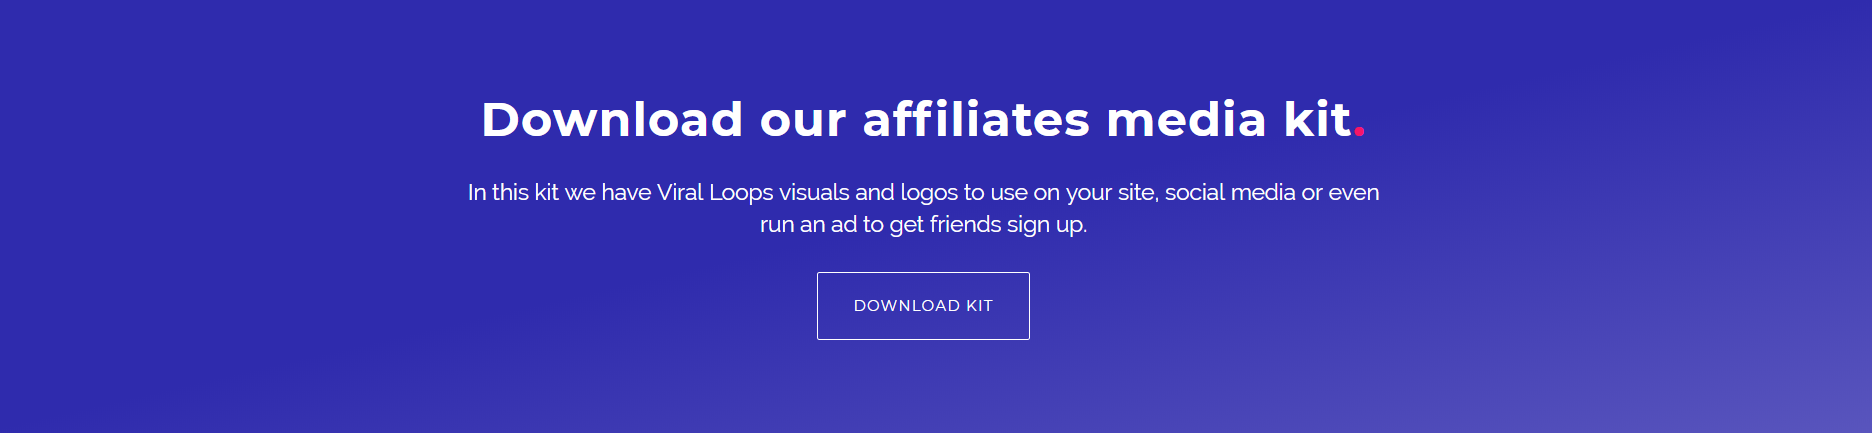 Viral Loops affiliates media kit